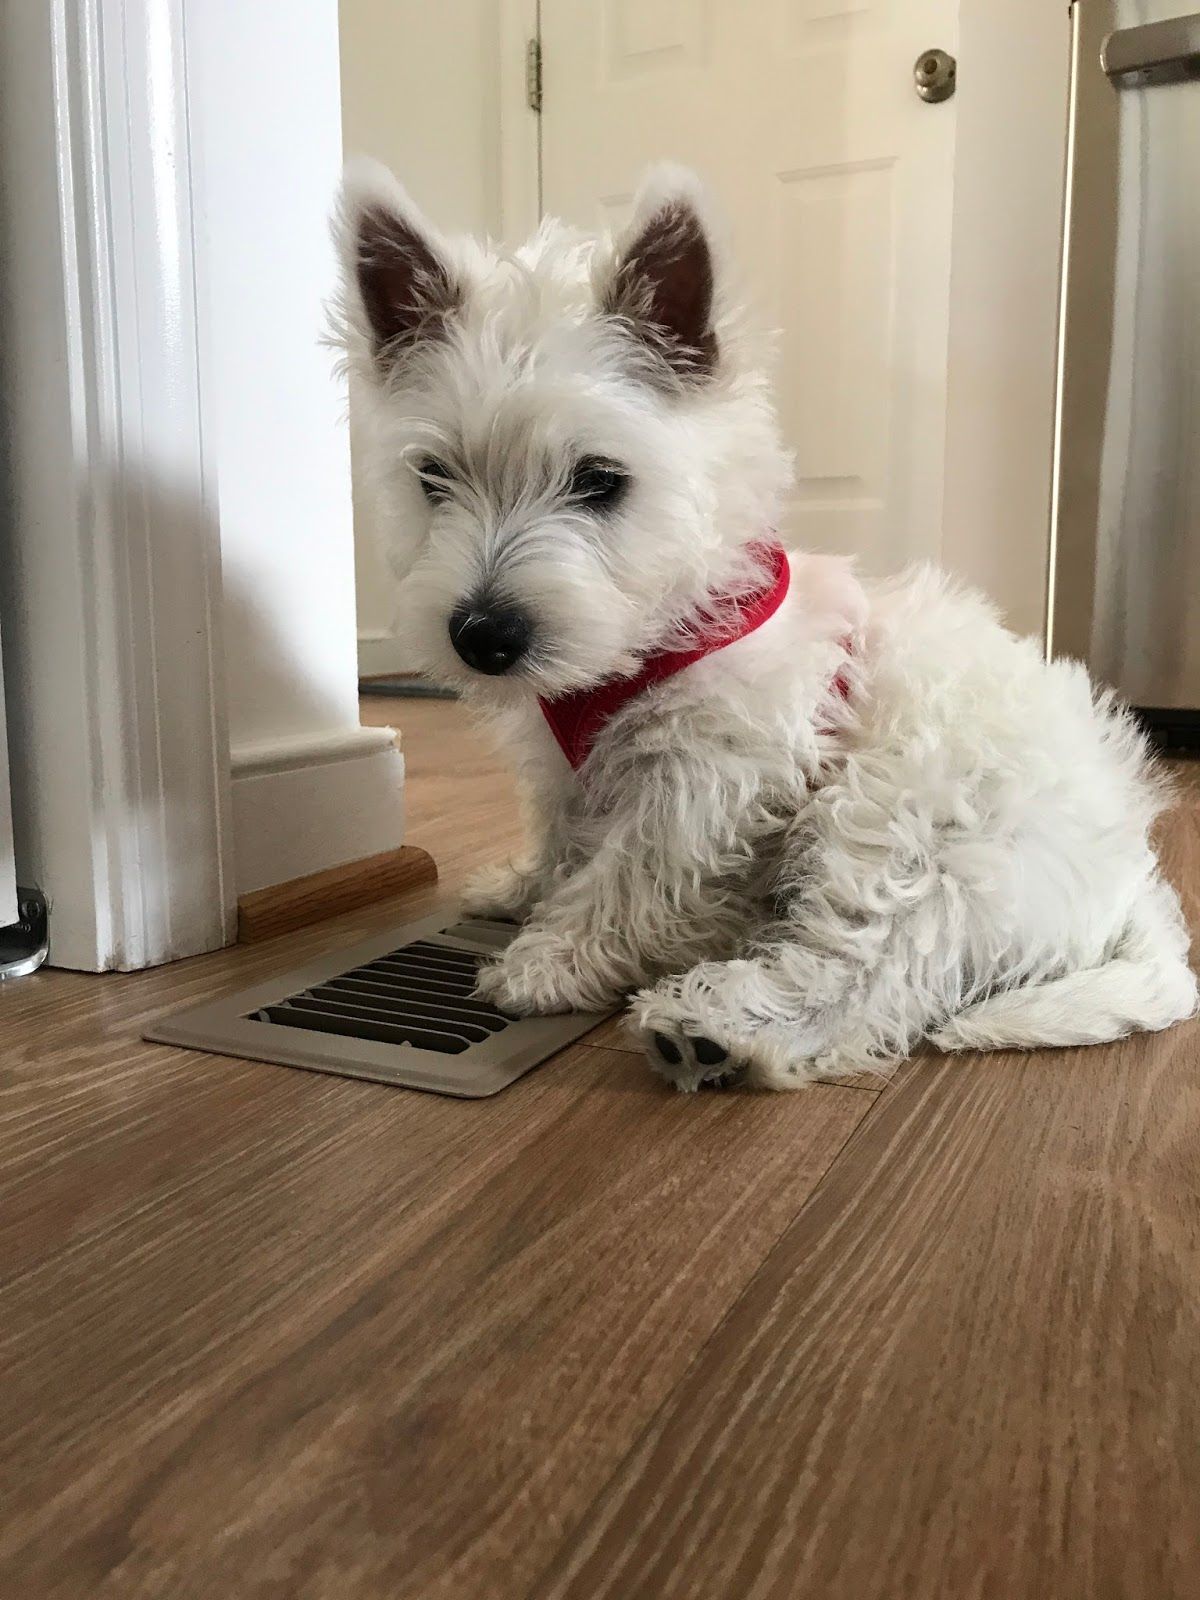 Dog Barks When Learning New Things